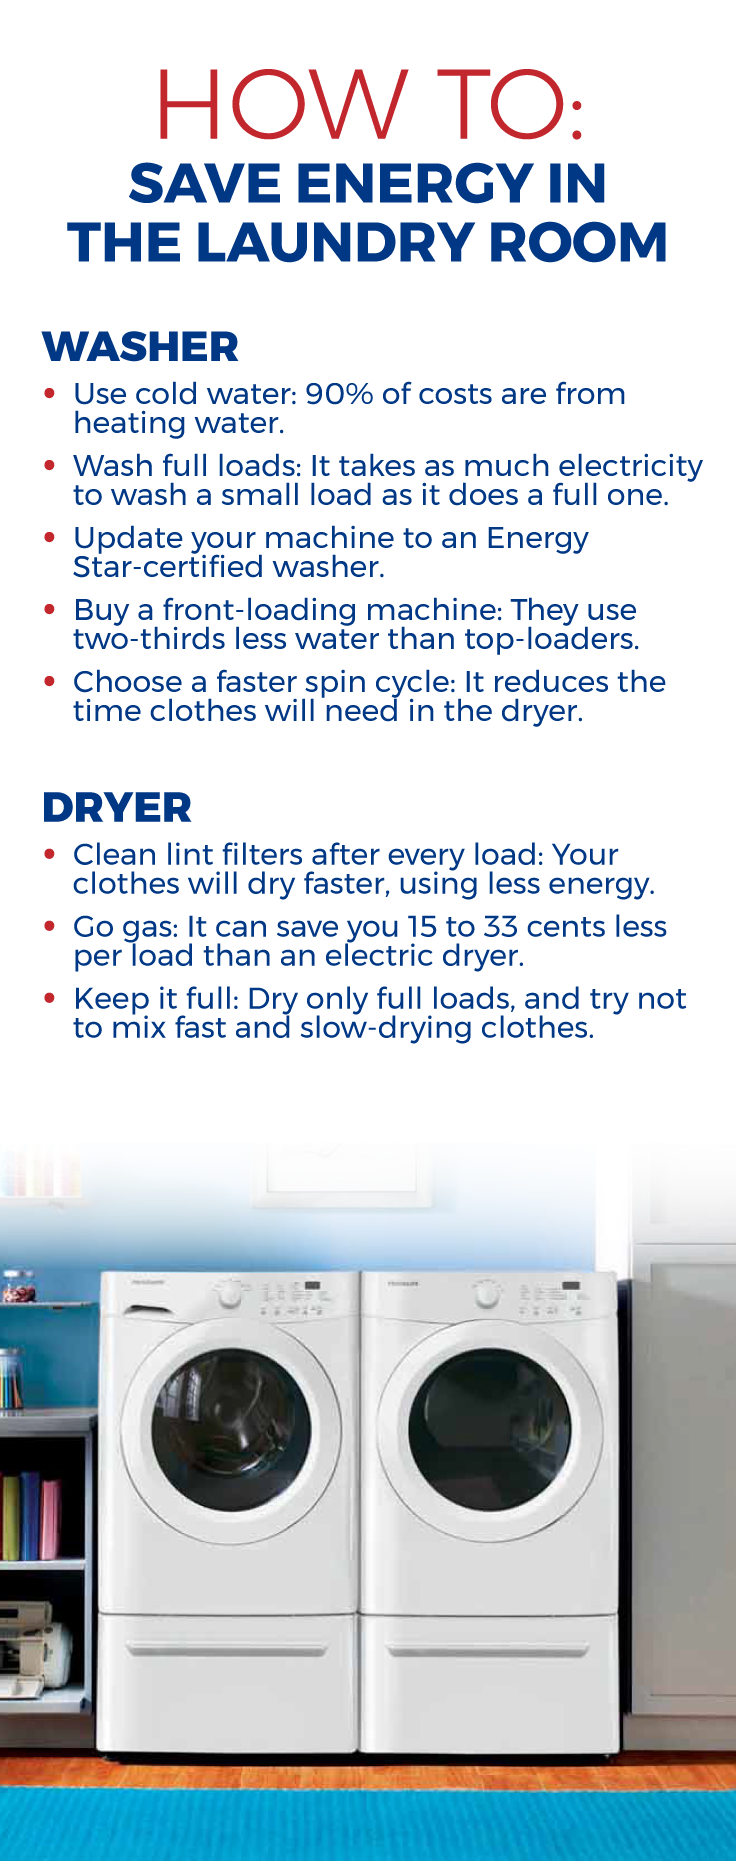 Did You Know That Most Laundry Room Expenses Come From Heating Water For Washing And Heating Air For Drying L Save Energy Laundry Business Laundromat Business